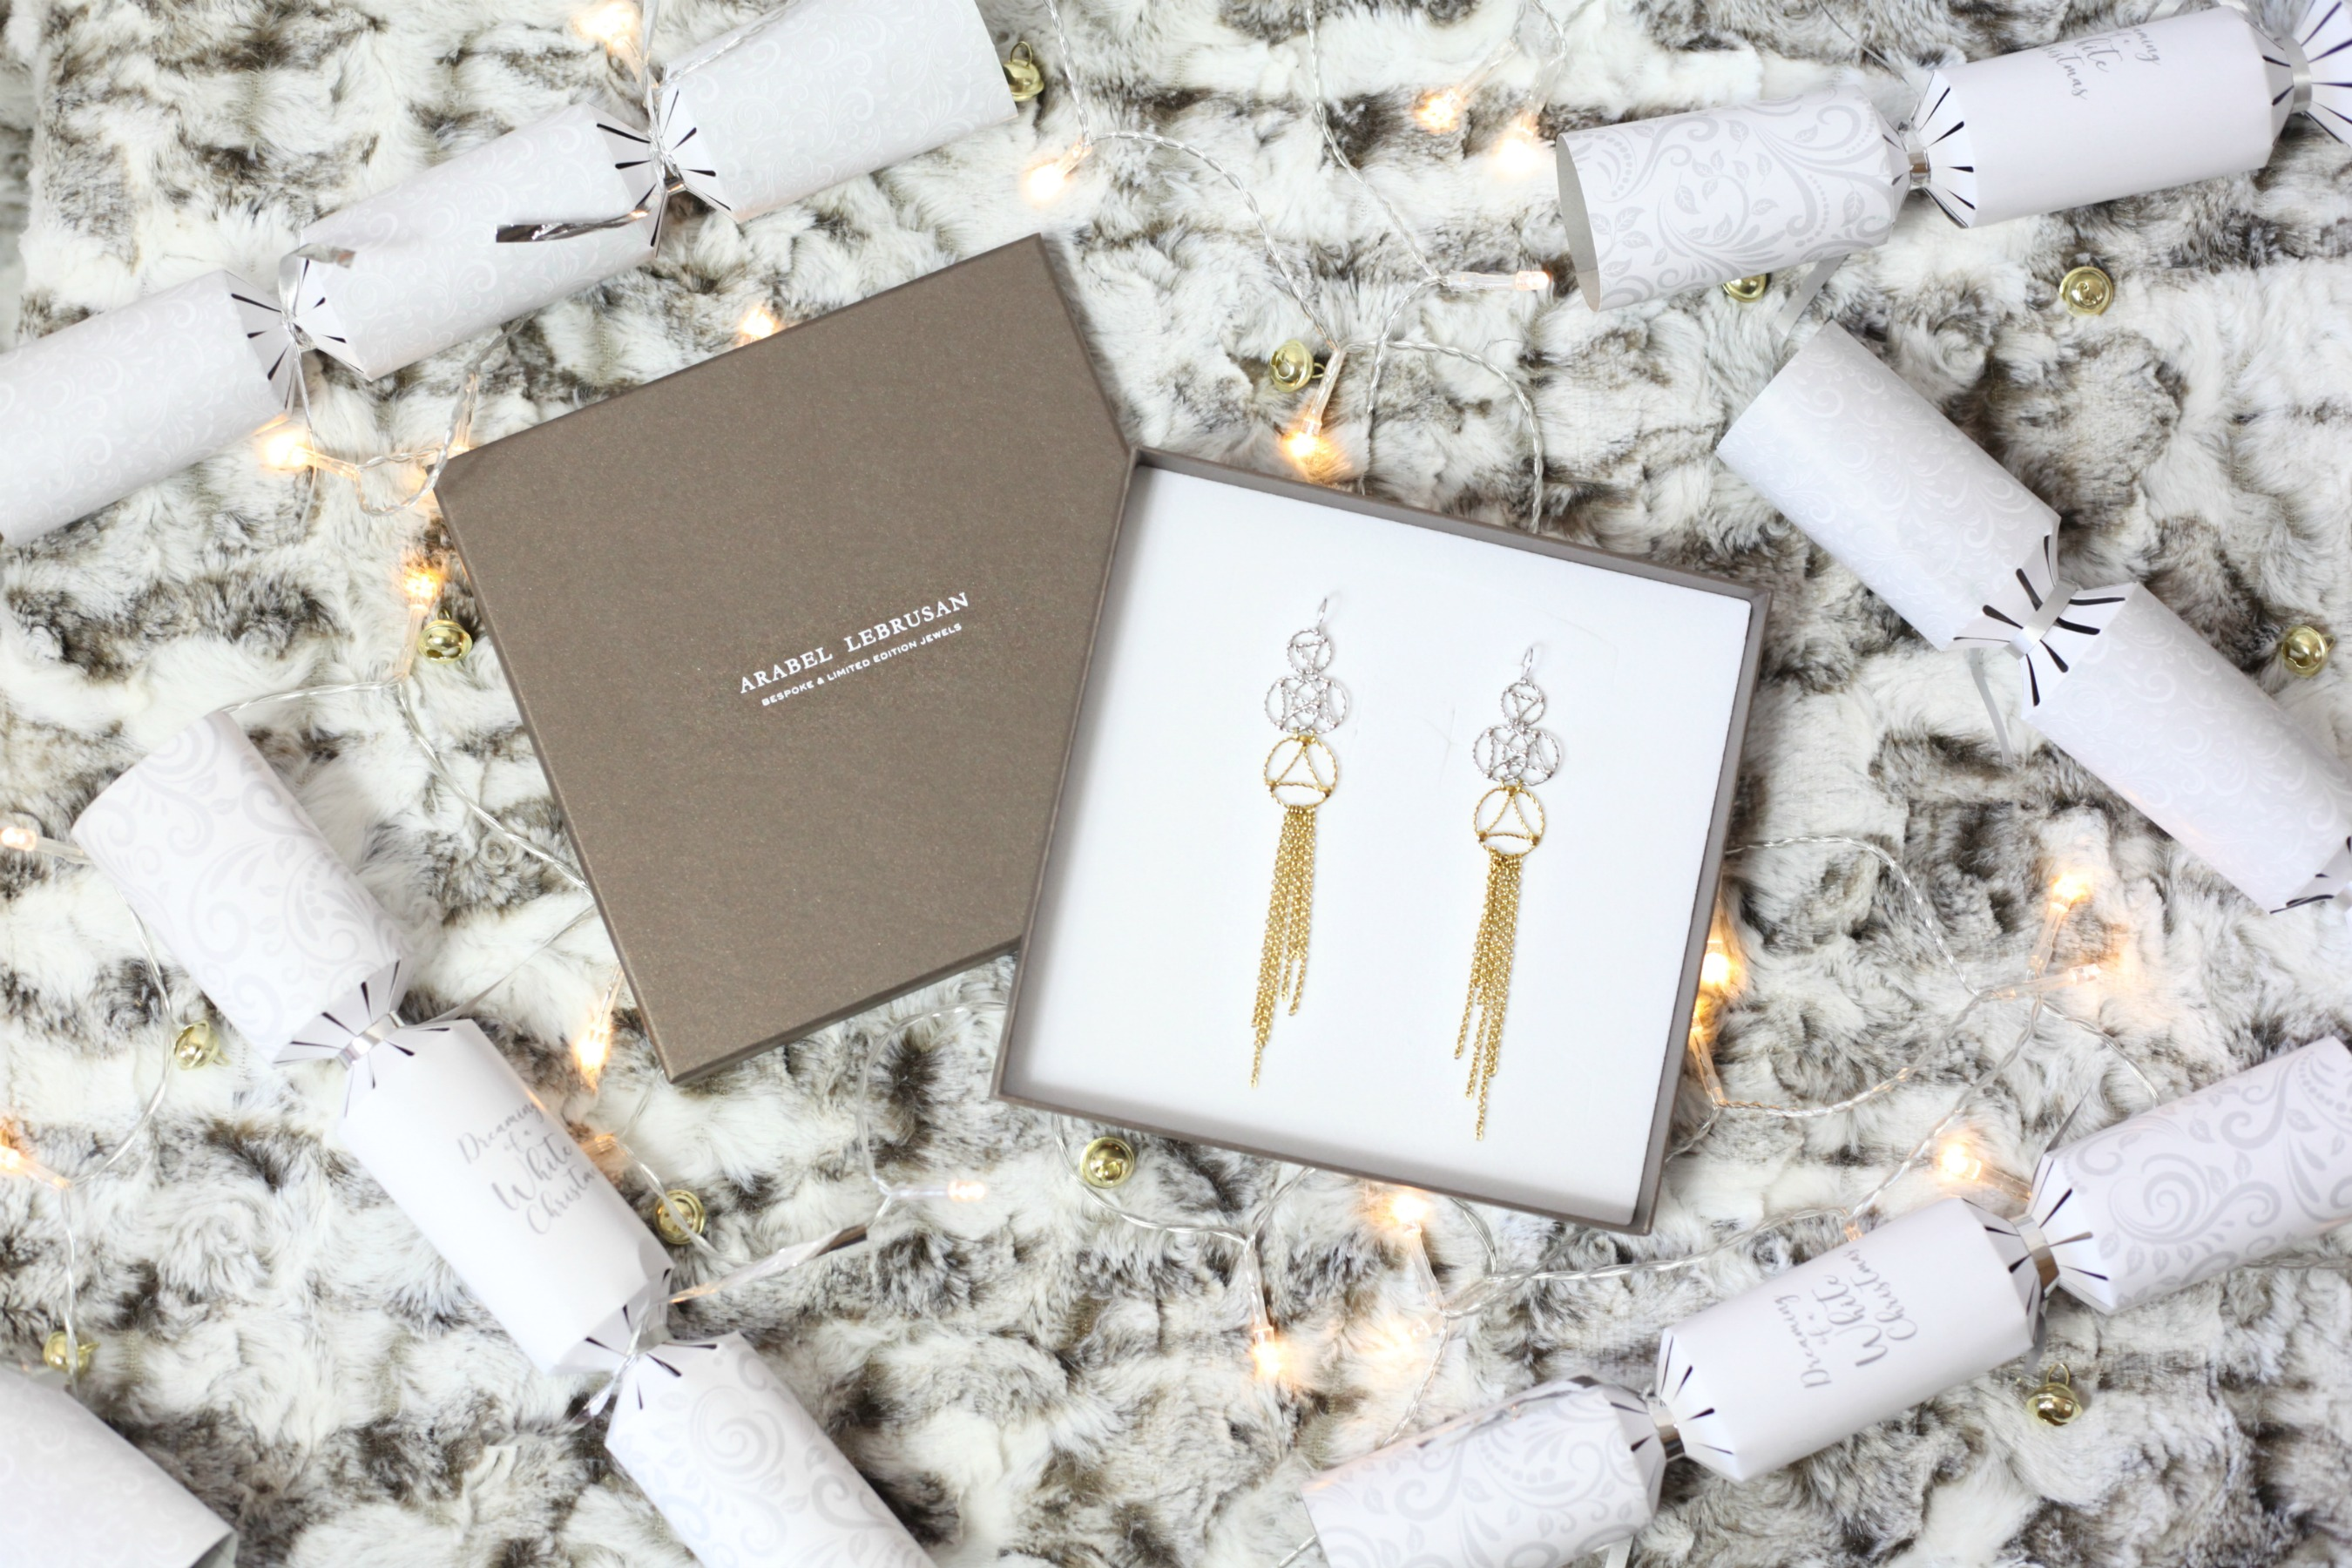 Luxurious Christmas gift ideas from Arabel Lebrusan like these gorgeous earrings